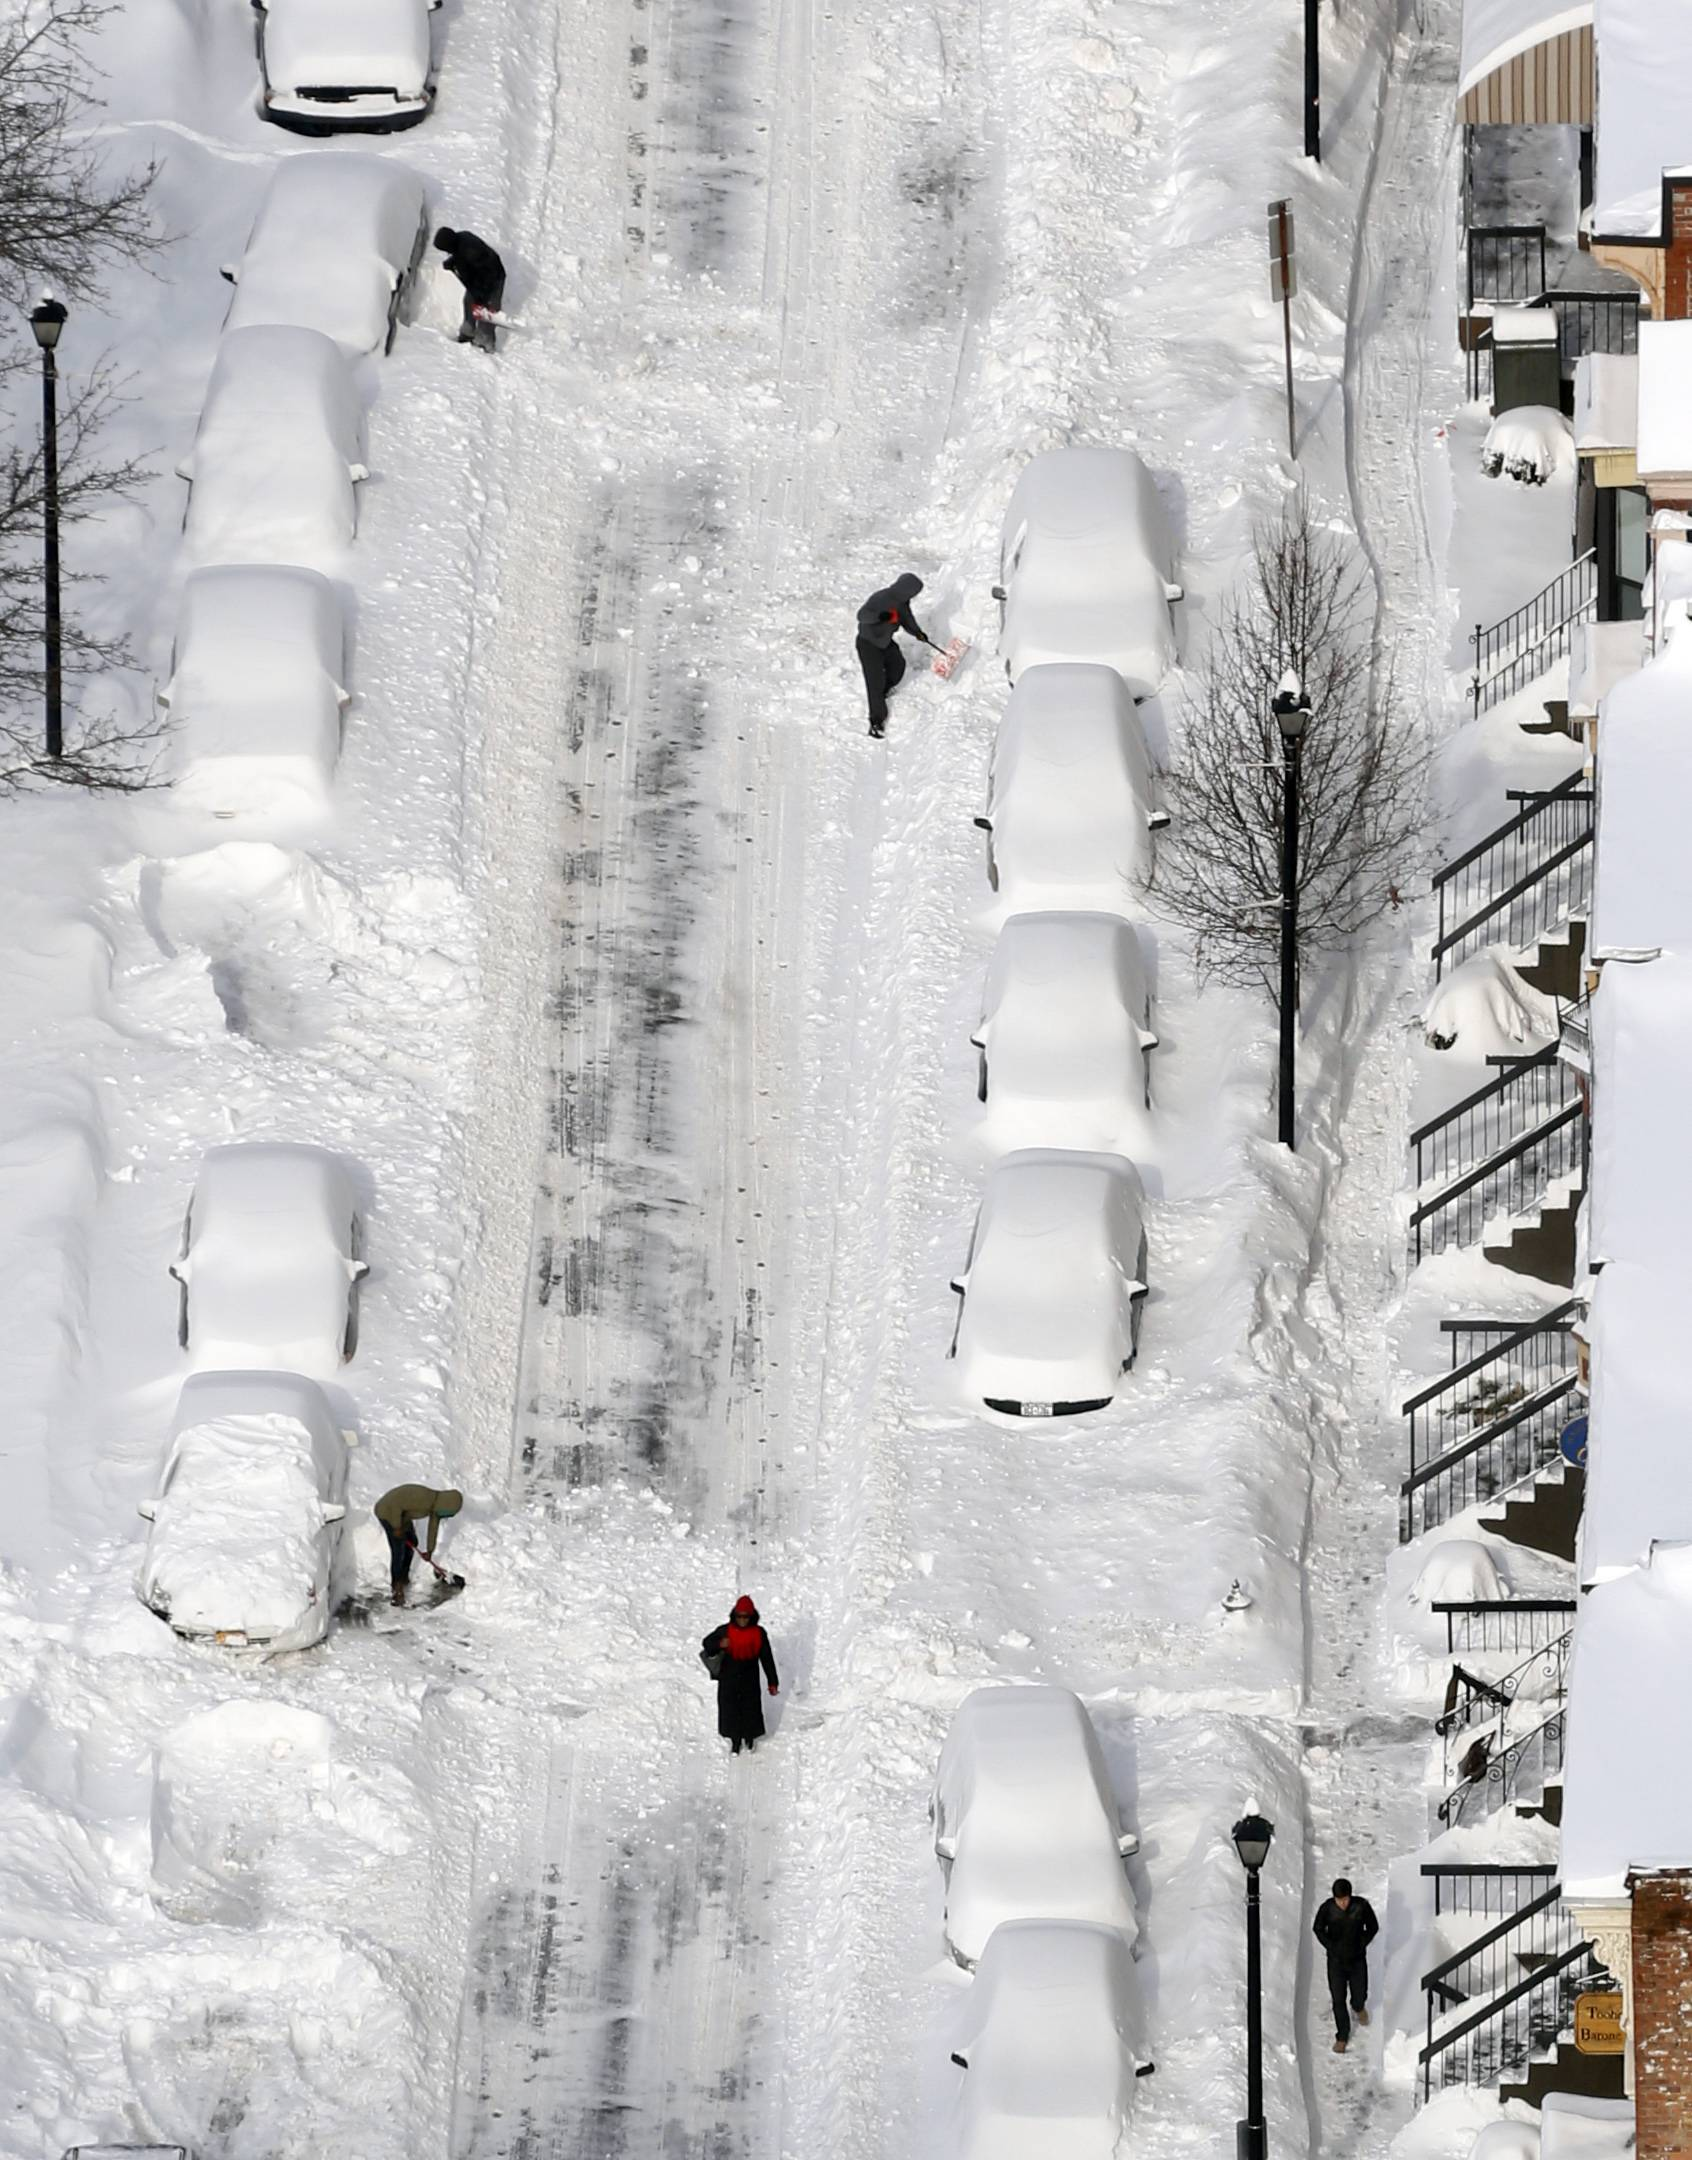 People dig out vehicles buried in snow in downtown Albany, N.Y., on Friday, Feb. 14, 2014. Schools are closed across a swath of eastern New York from the mid-Hudson Valley to the Albany ar